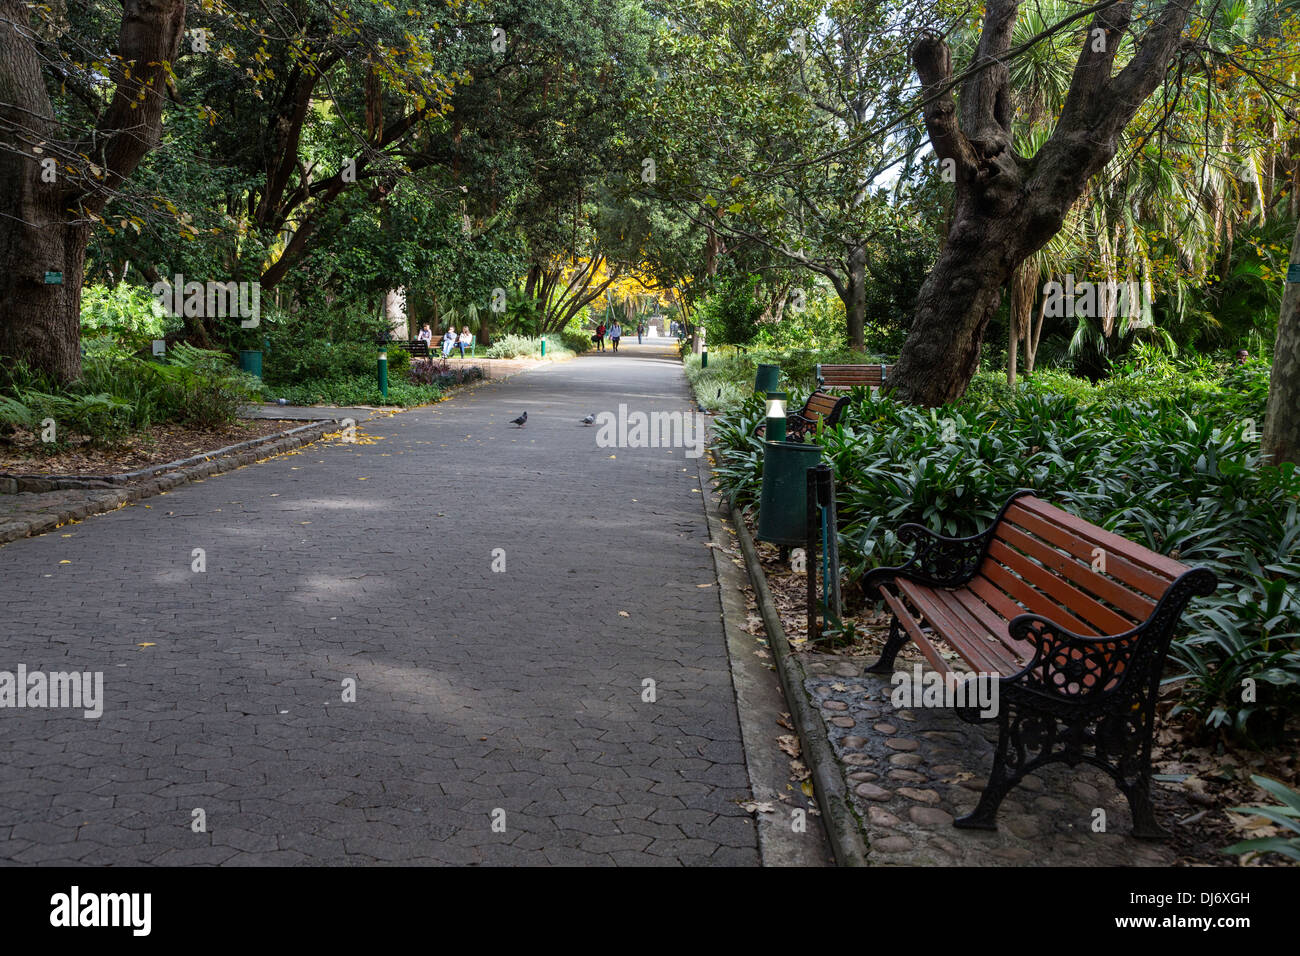 South Africa, Cape Town. Government Avenue through The Company's Garden, established by the Dutch East India Company in 1652. - Stock Image